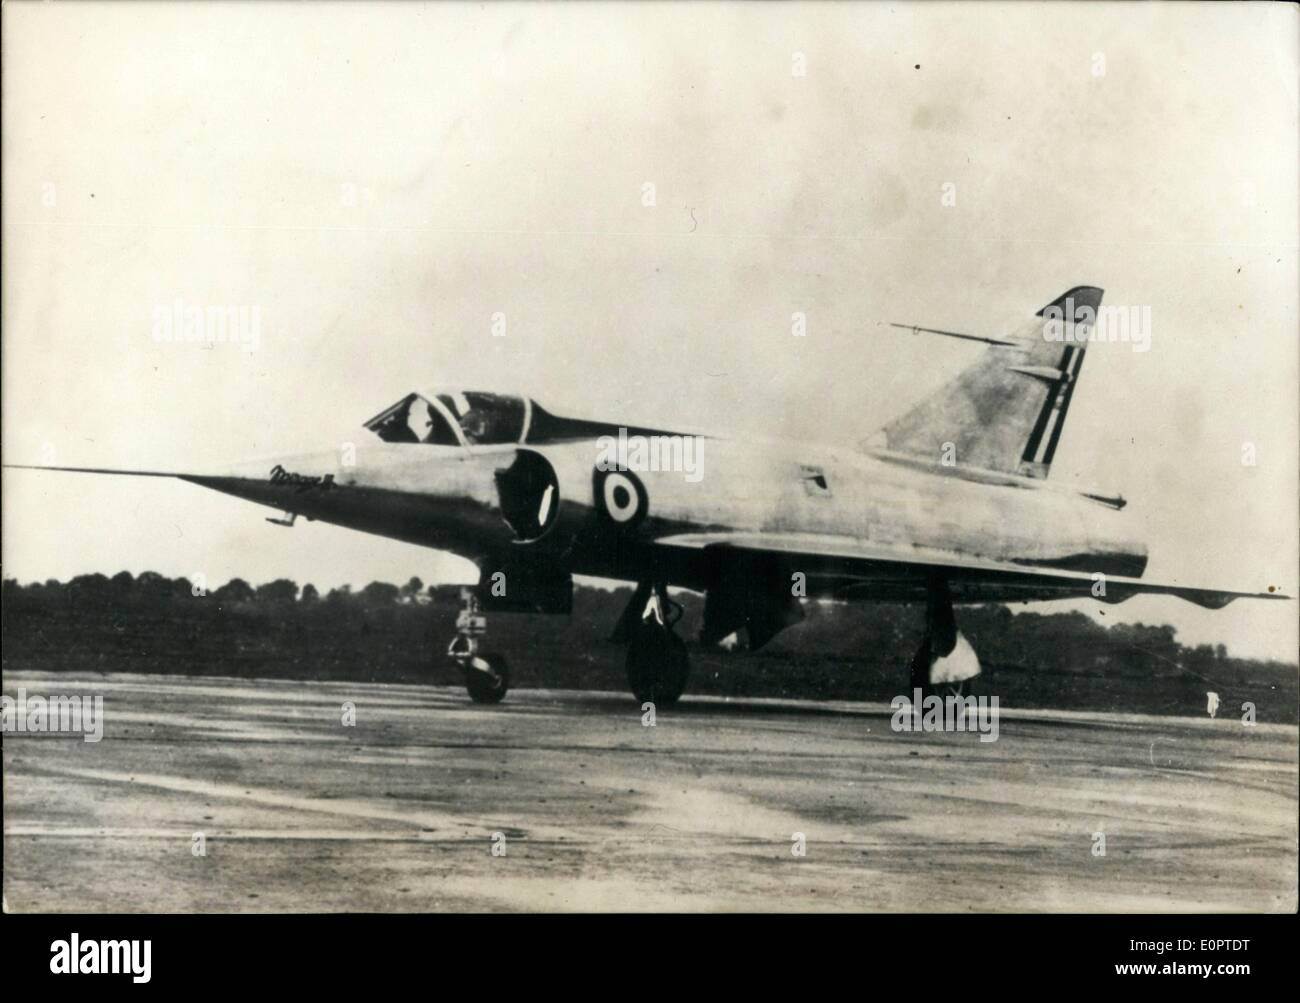 Feb. 02, 1957 - French Plane Flies at 1.150 m.p.h. The new French delta winged interceptor ''Mirage 0-3'' flew at a speed of 1.150 m.p.h. during a test horizontal flight yesterday. The ''Mirage 0-3'' is equipped with a Snecma jet engine ''Atar 101G'', post combustion. OPS: The new delta winged interceptor ''Mirage 0-3' - Stock Image